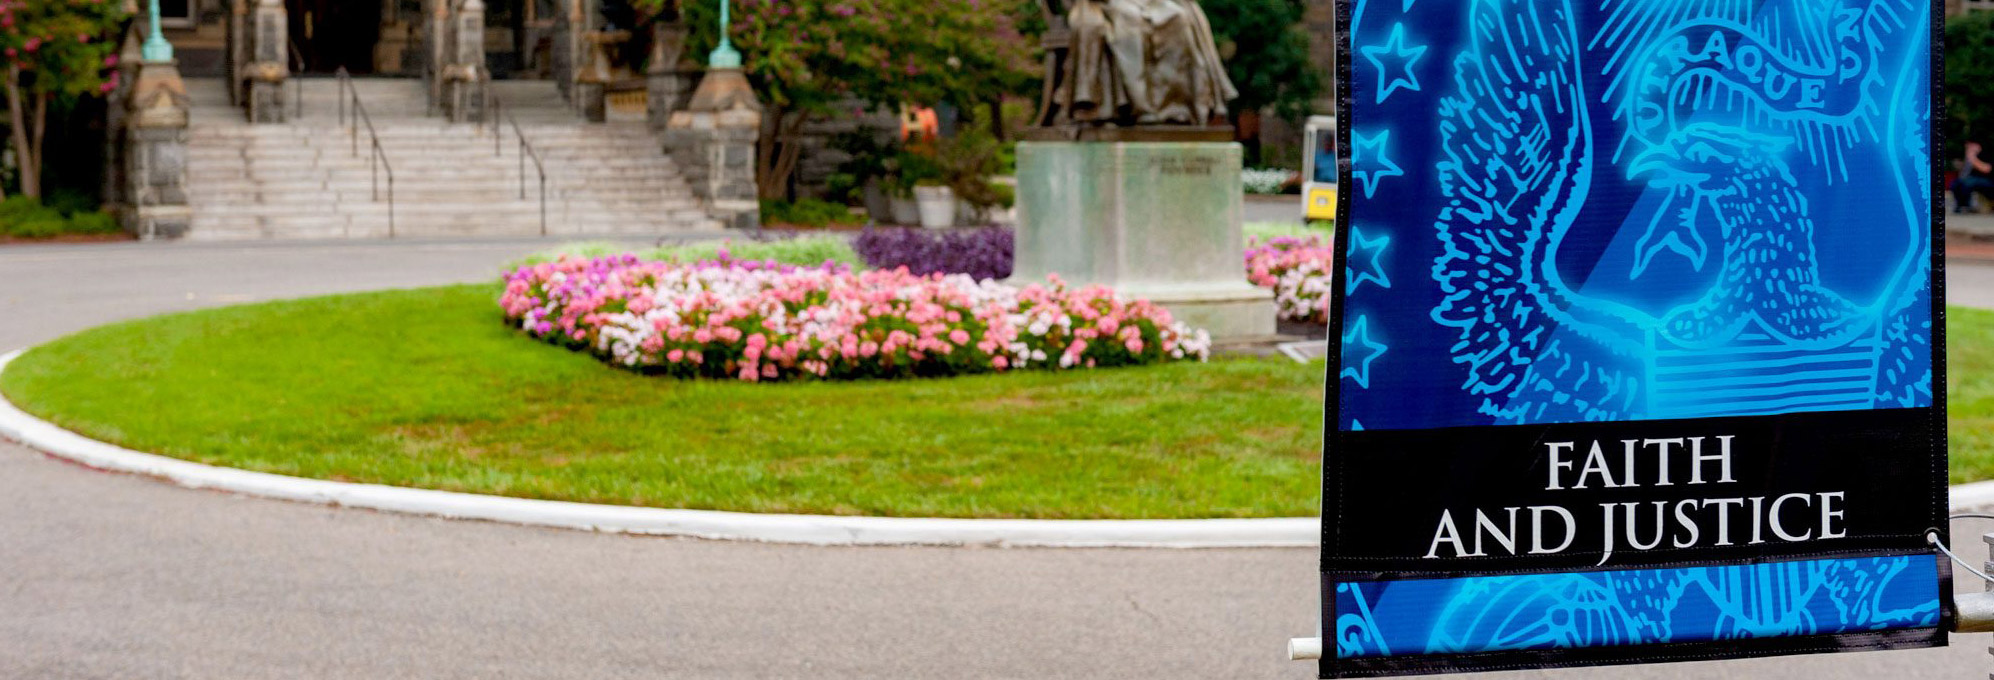 Image of John Carroll Statue, in front of Healy Hall, surrounded by flowering plants. In the foreground a banner with the words